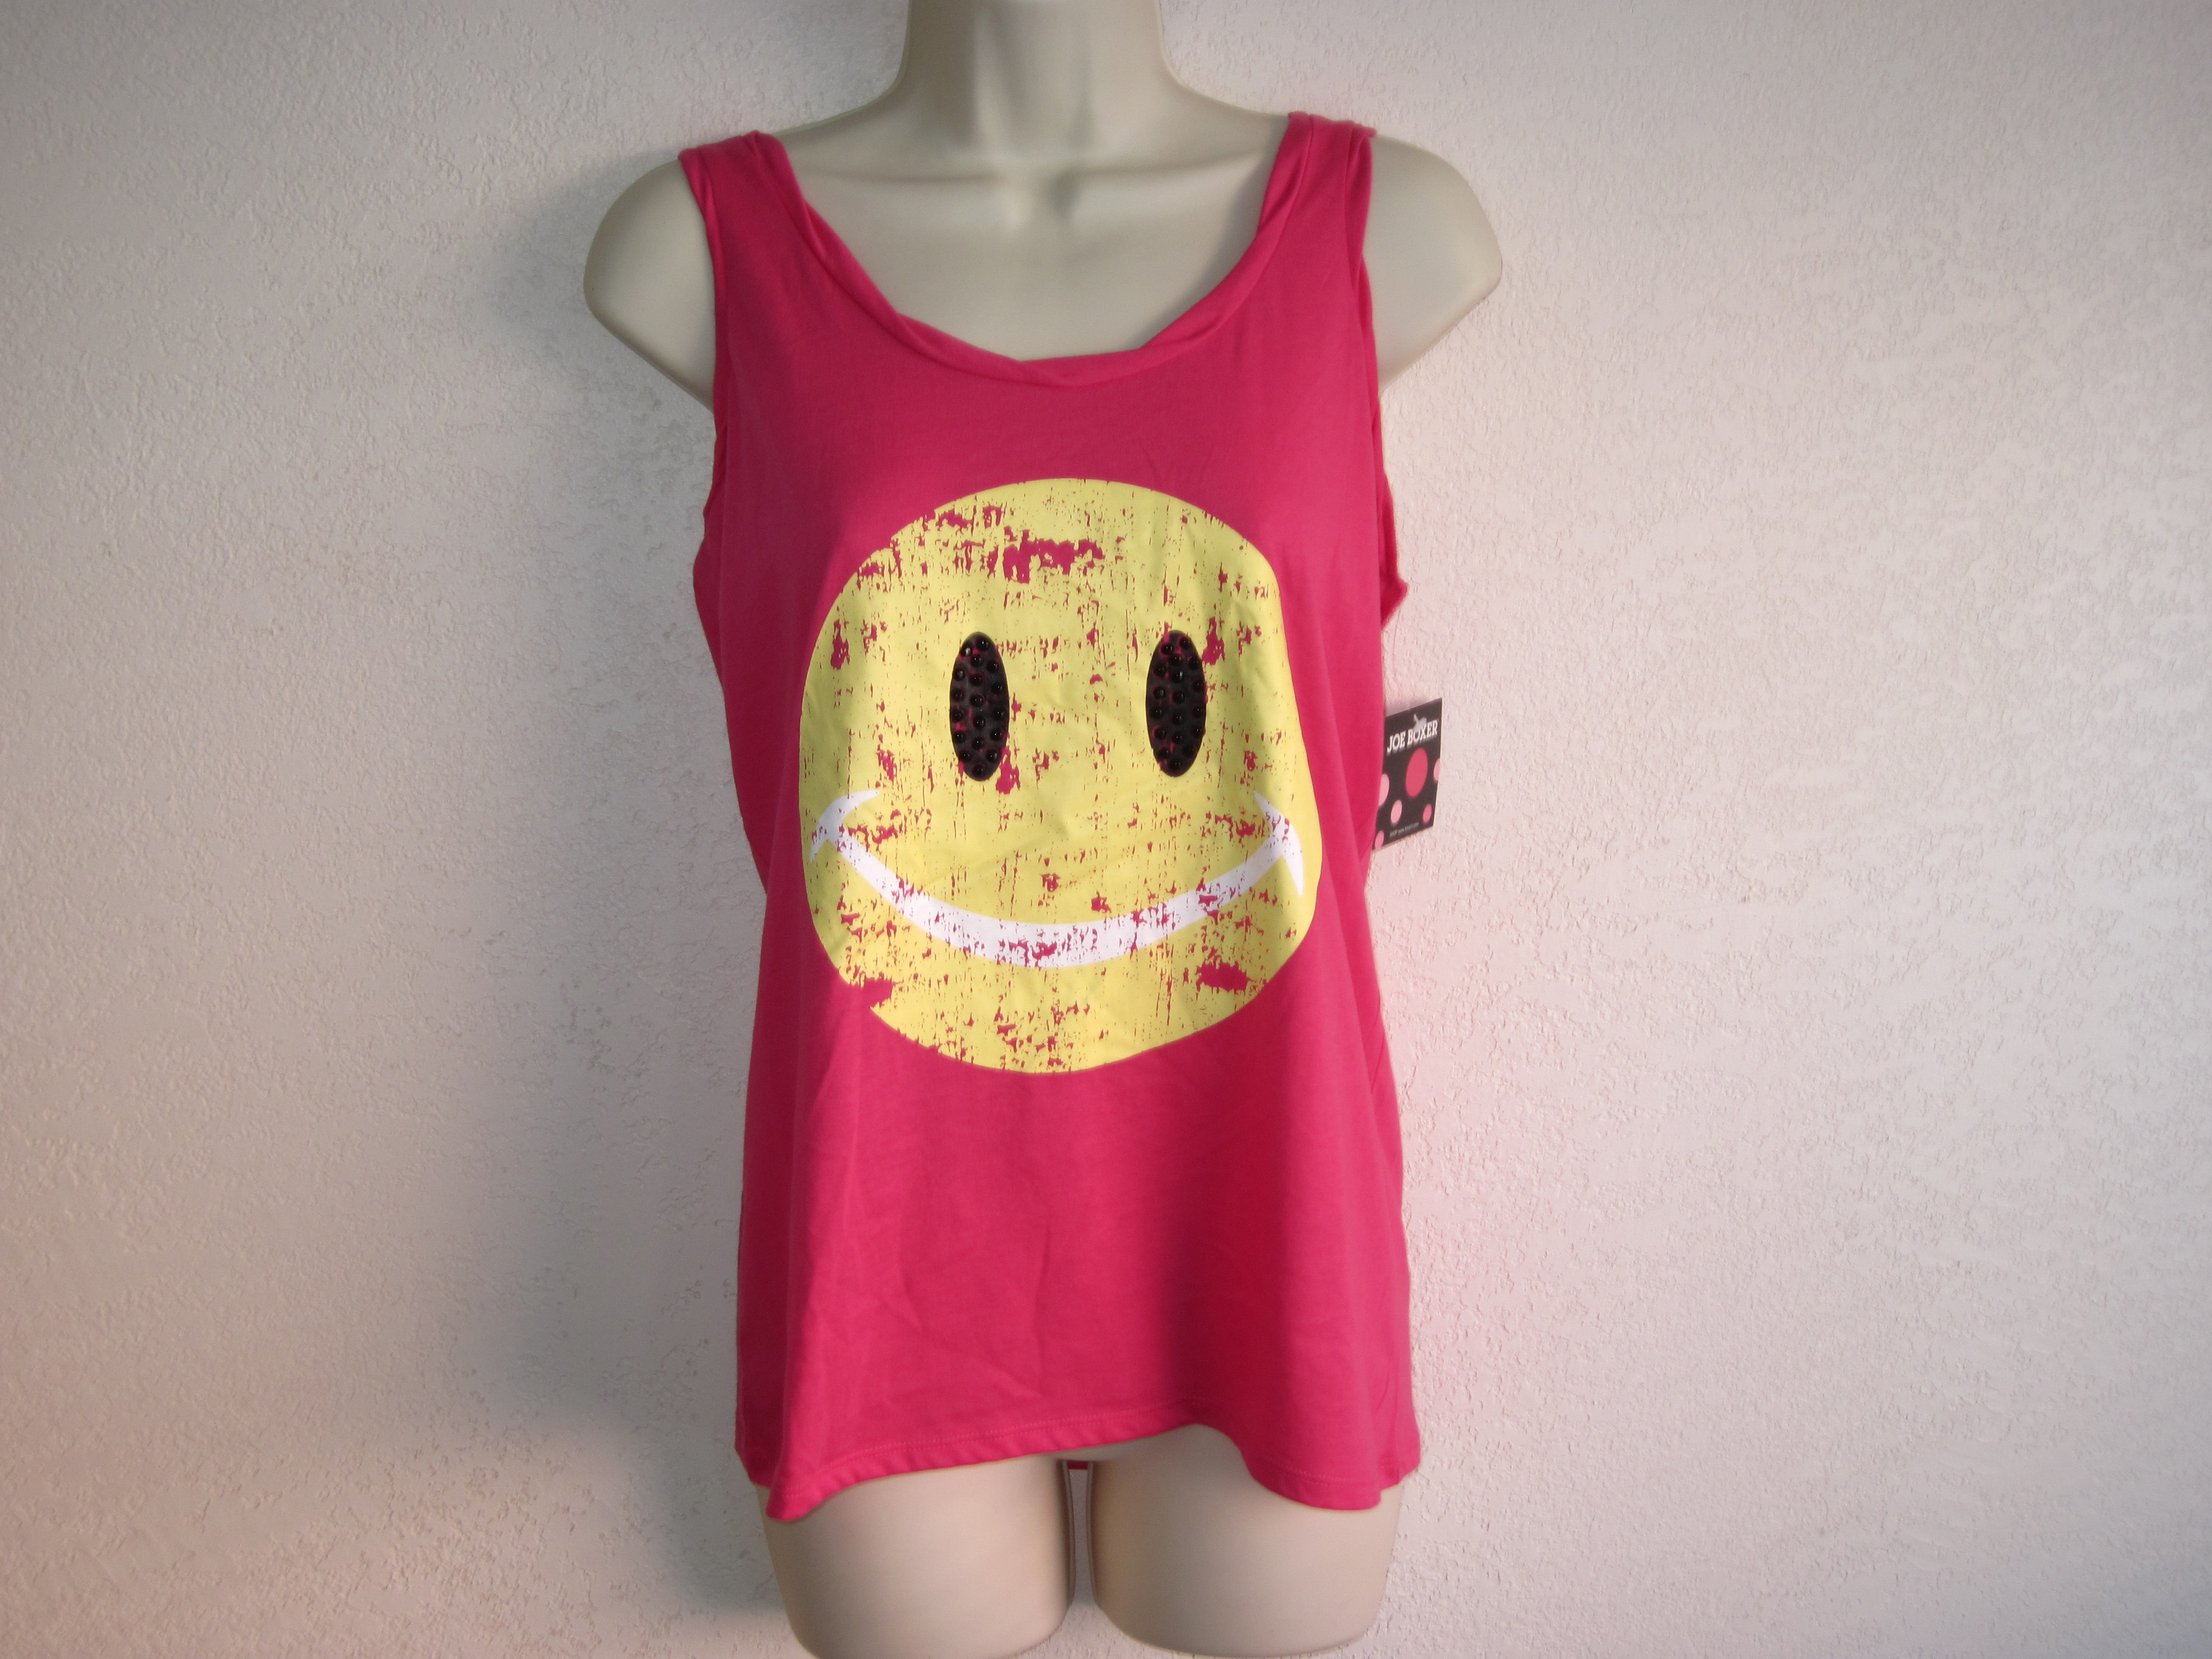 Joe Boxer Sz S Tank top Pink with Smiley Face on front